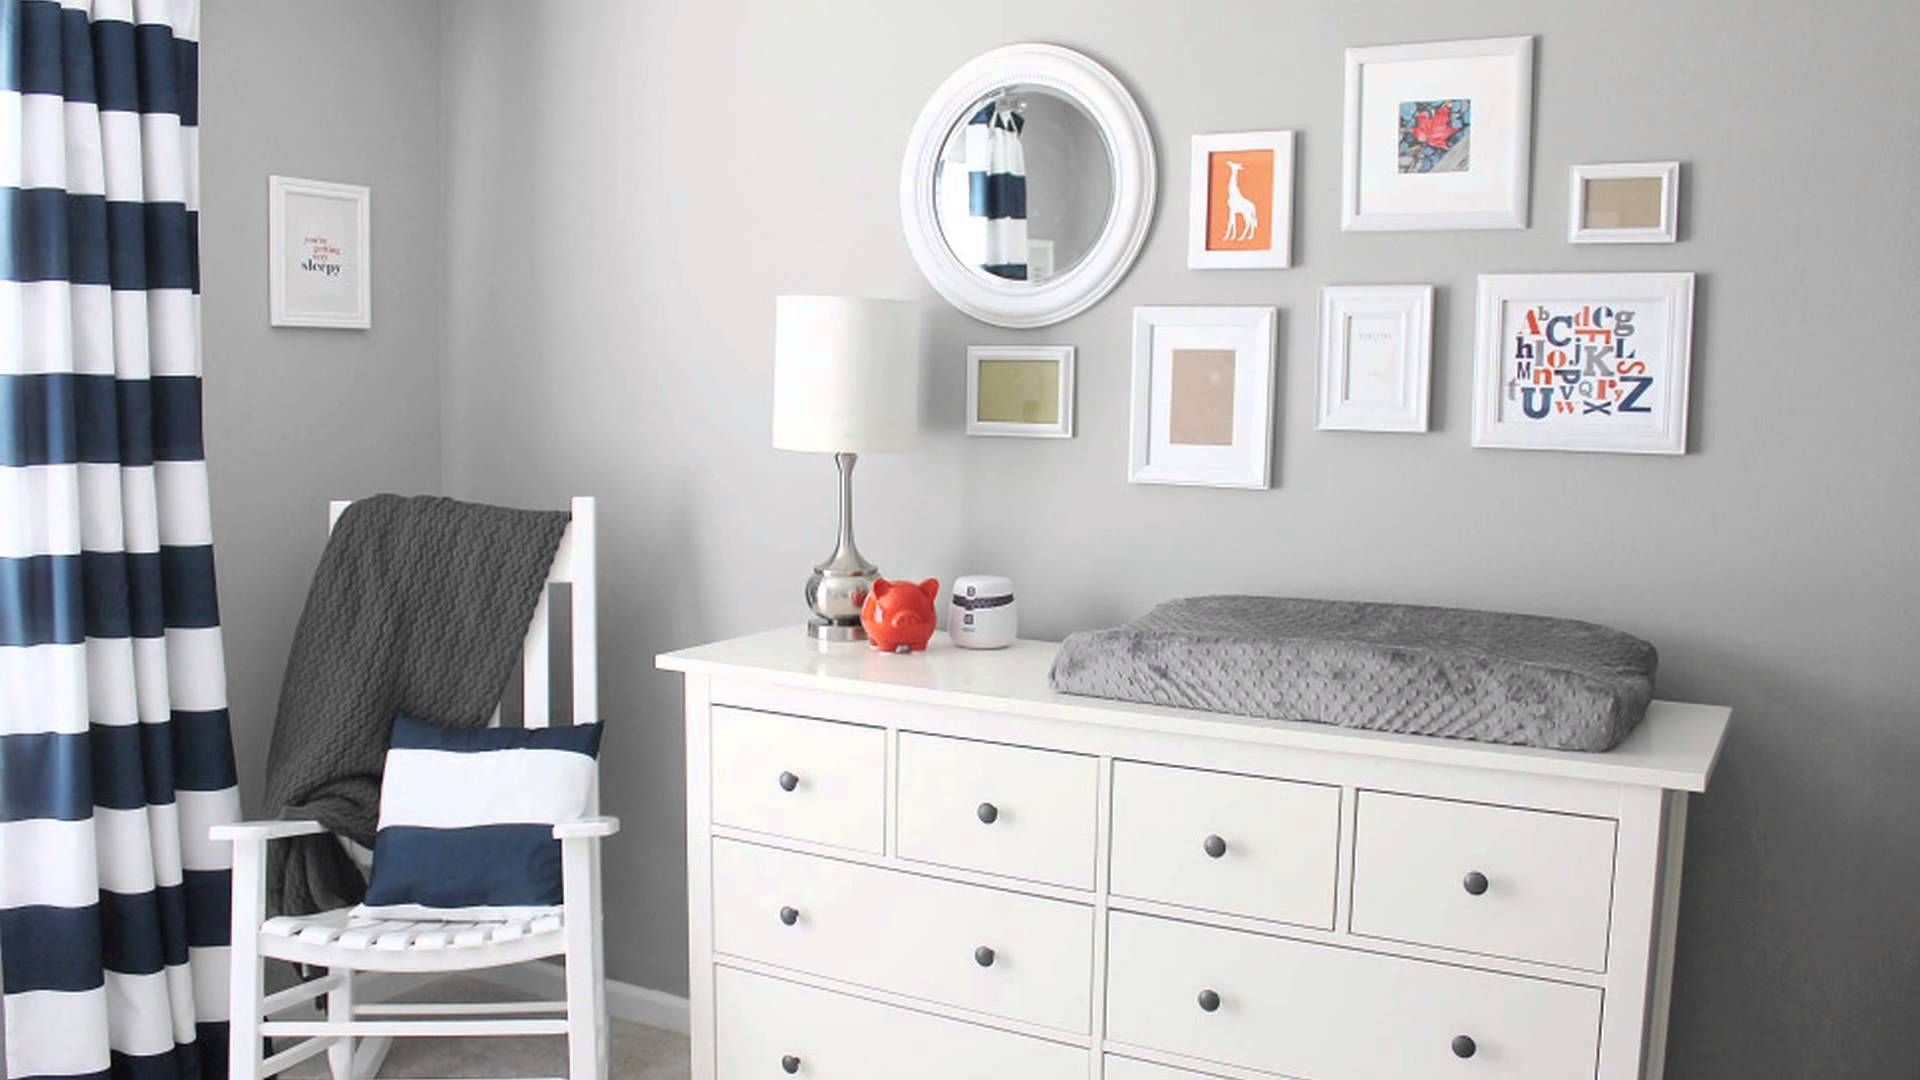 Room Tour of this darling #DIY #Nursery for Twin Boys - love the modern design!